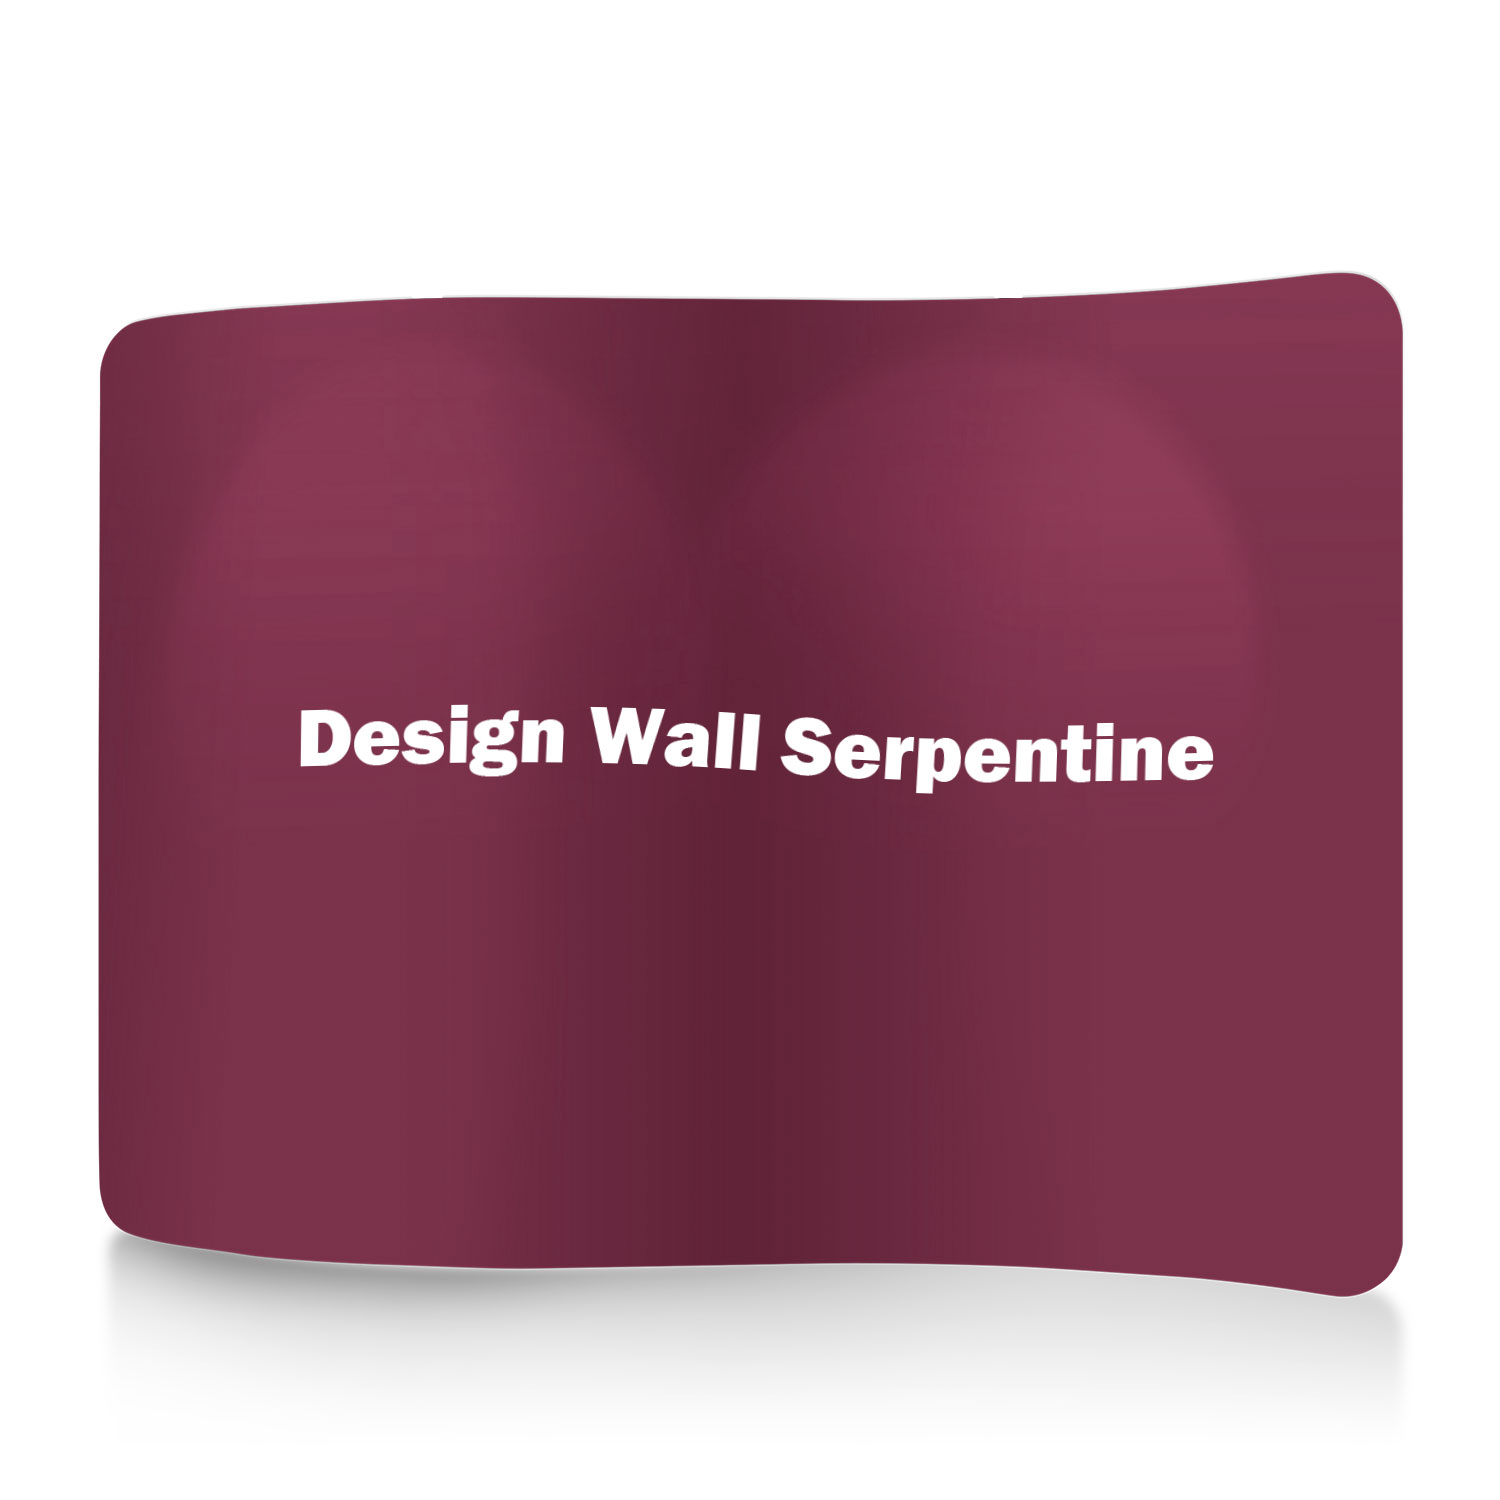 Design Wall Serpentine